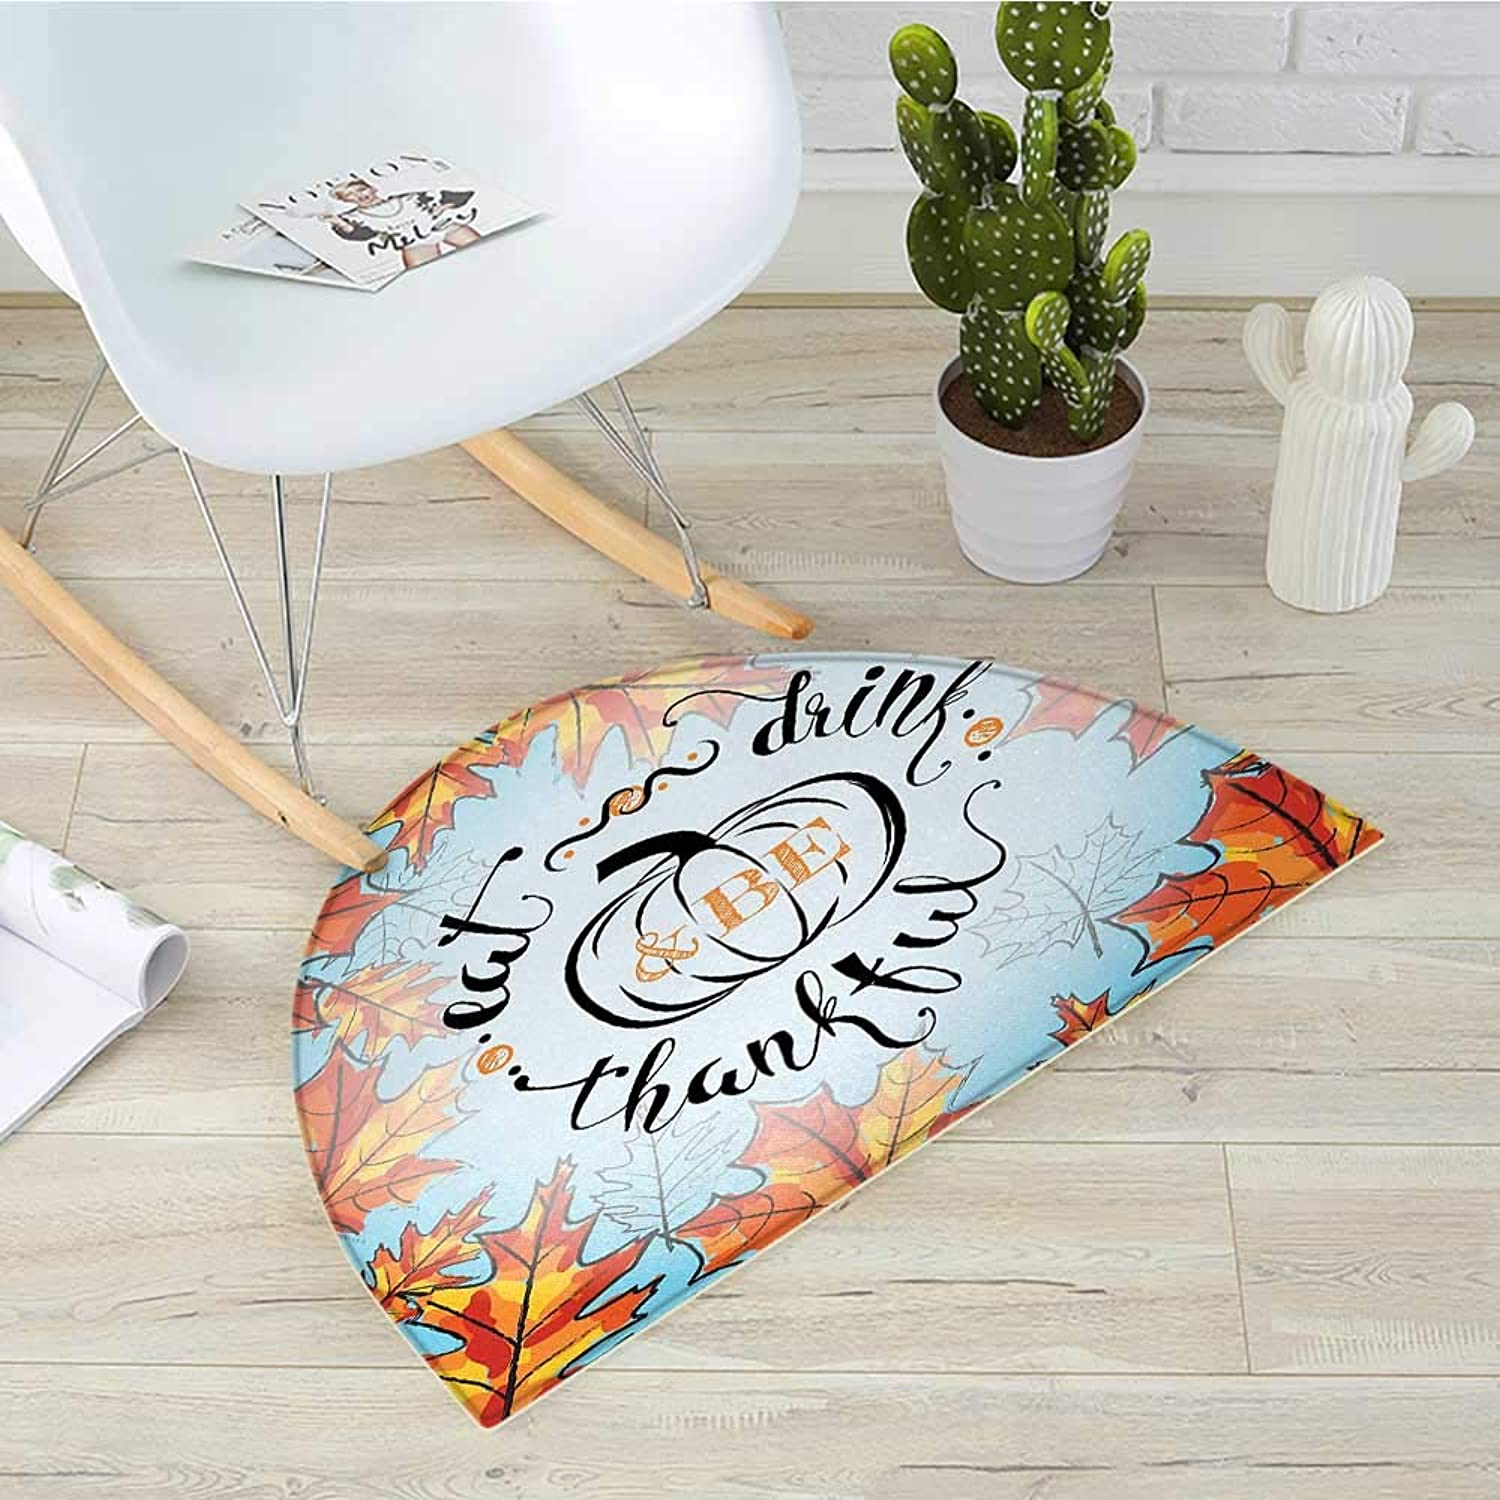 Quote Semicircular CushionEat Drink and Be Thankful Quote for Thanksgiving with Fall Leaves Entry Door Mat H 39.3  xD 59  Sky bluee Dark orange and Black